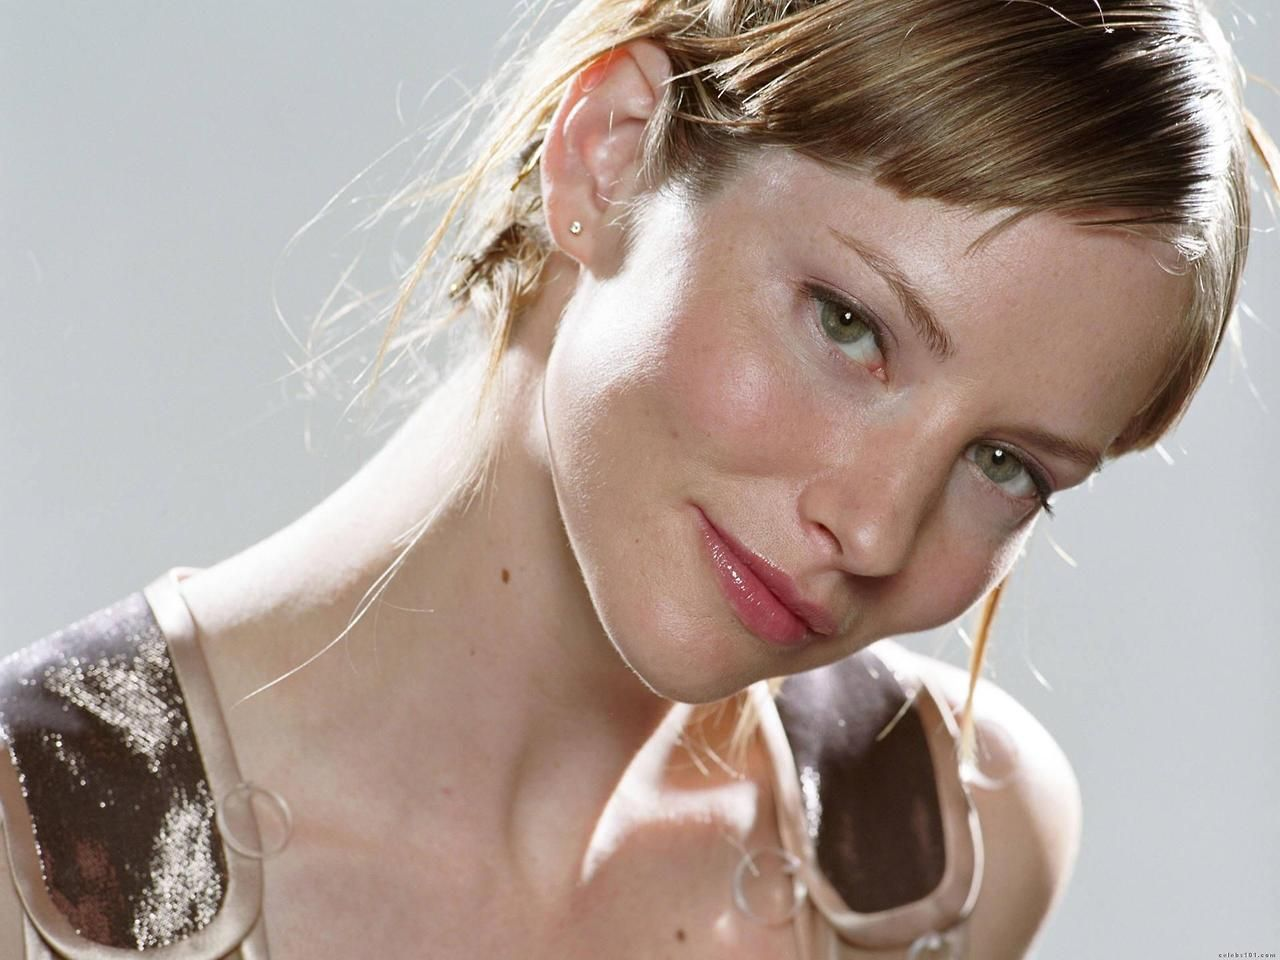 images Sienna Guillory (born 1975)